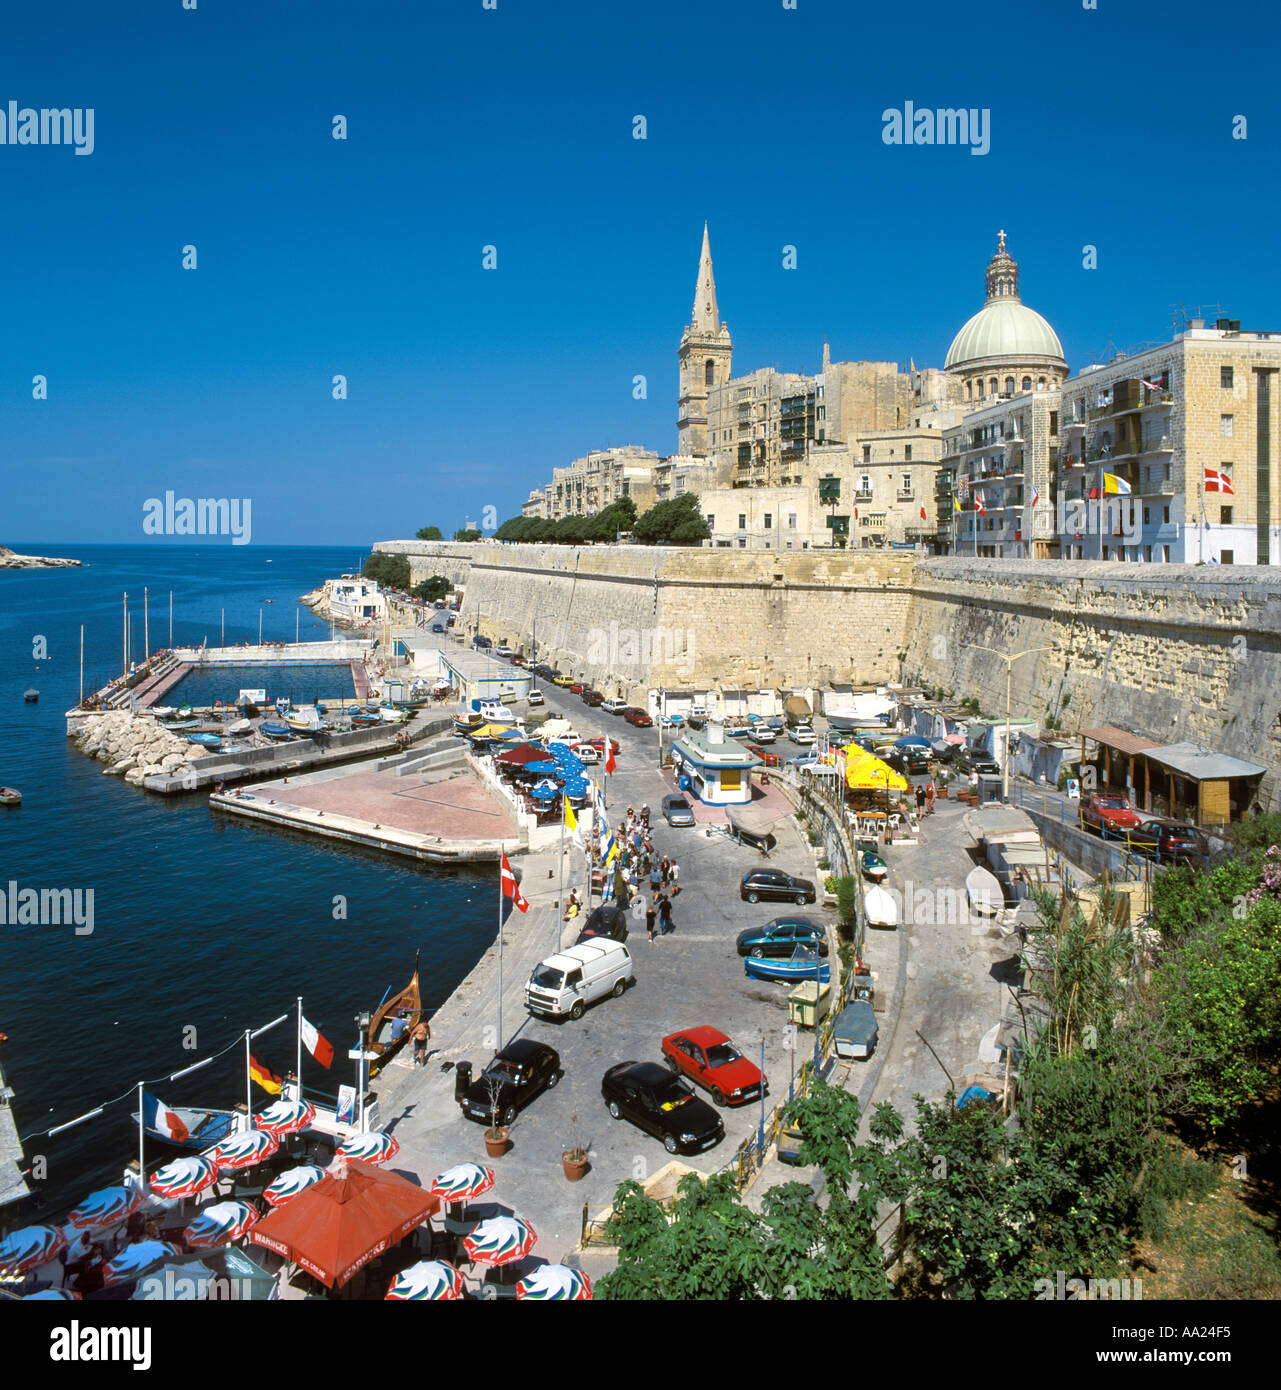 Seafront looking towards the old city with the dome of the Carmelite Church, Valletta, Malta Stock Photo